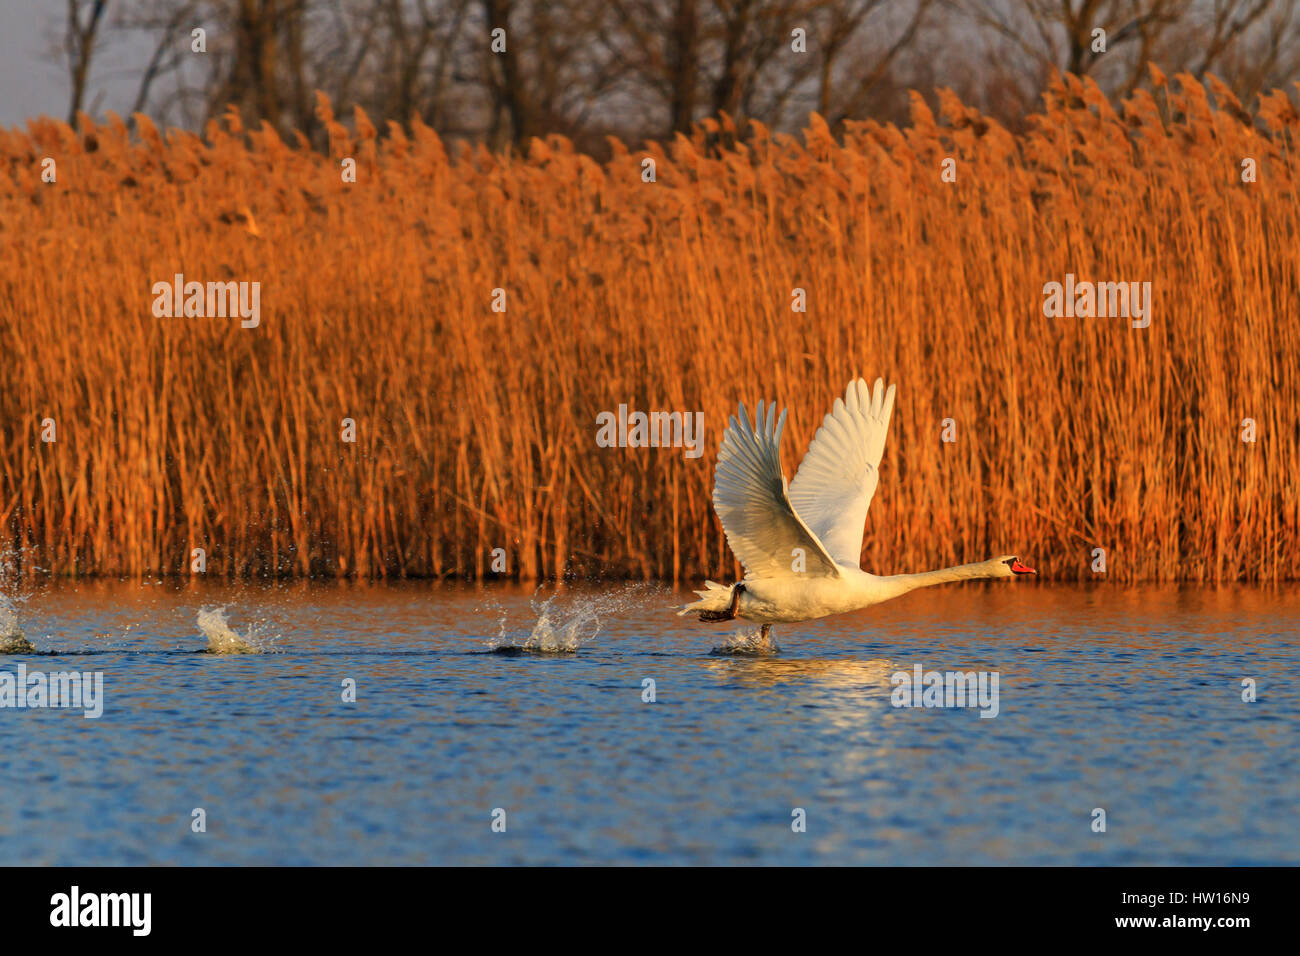 White Swan Flying On A Blue Lakebeautiful Birds White Birds Love